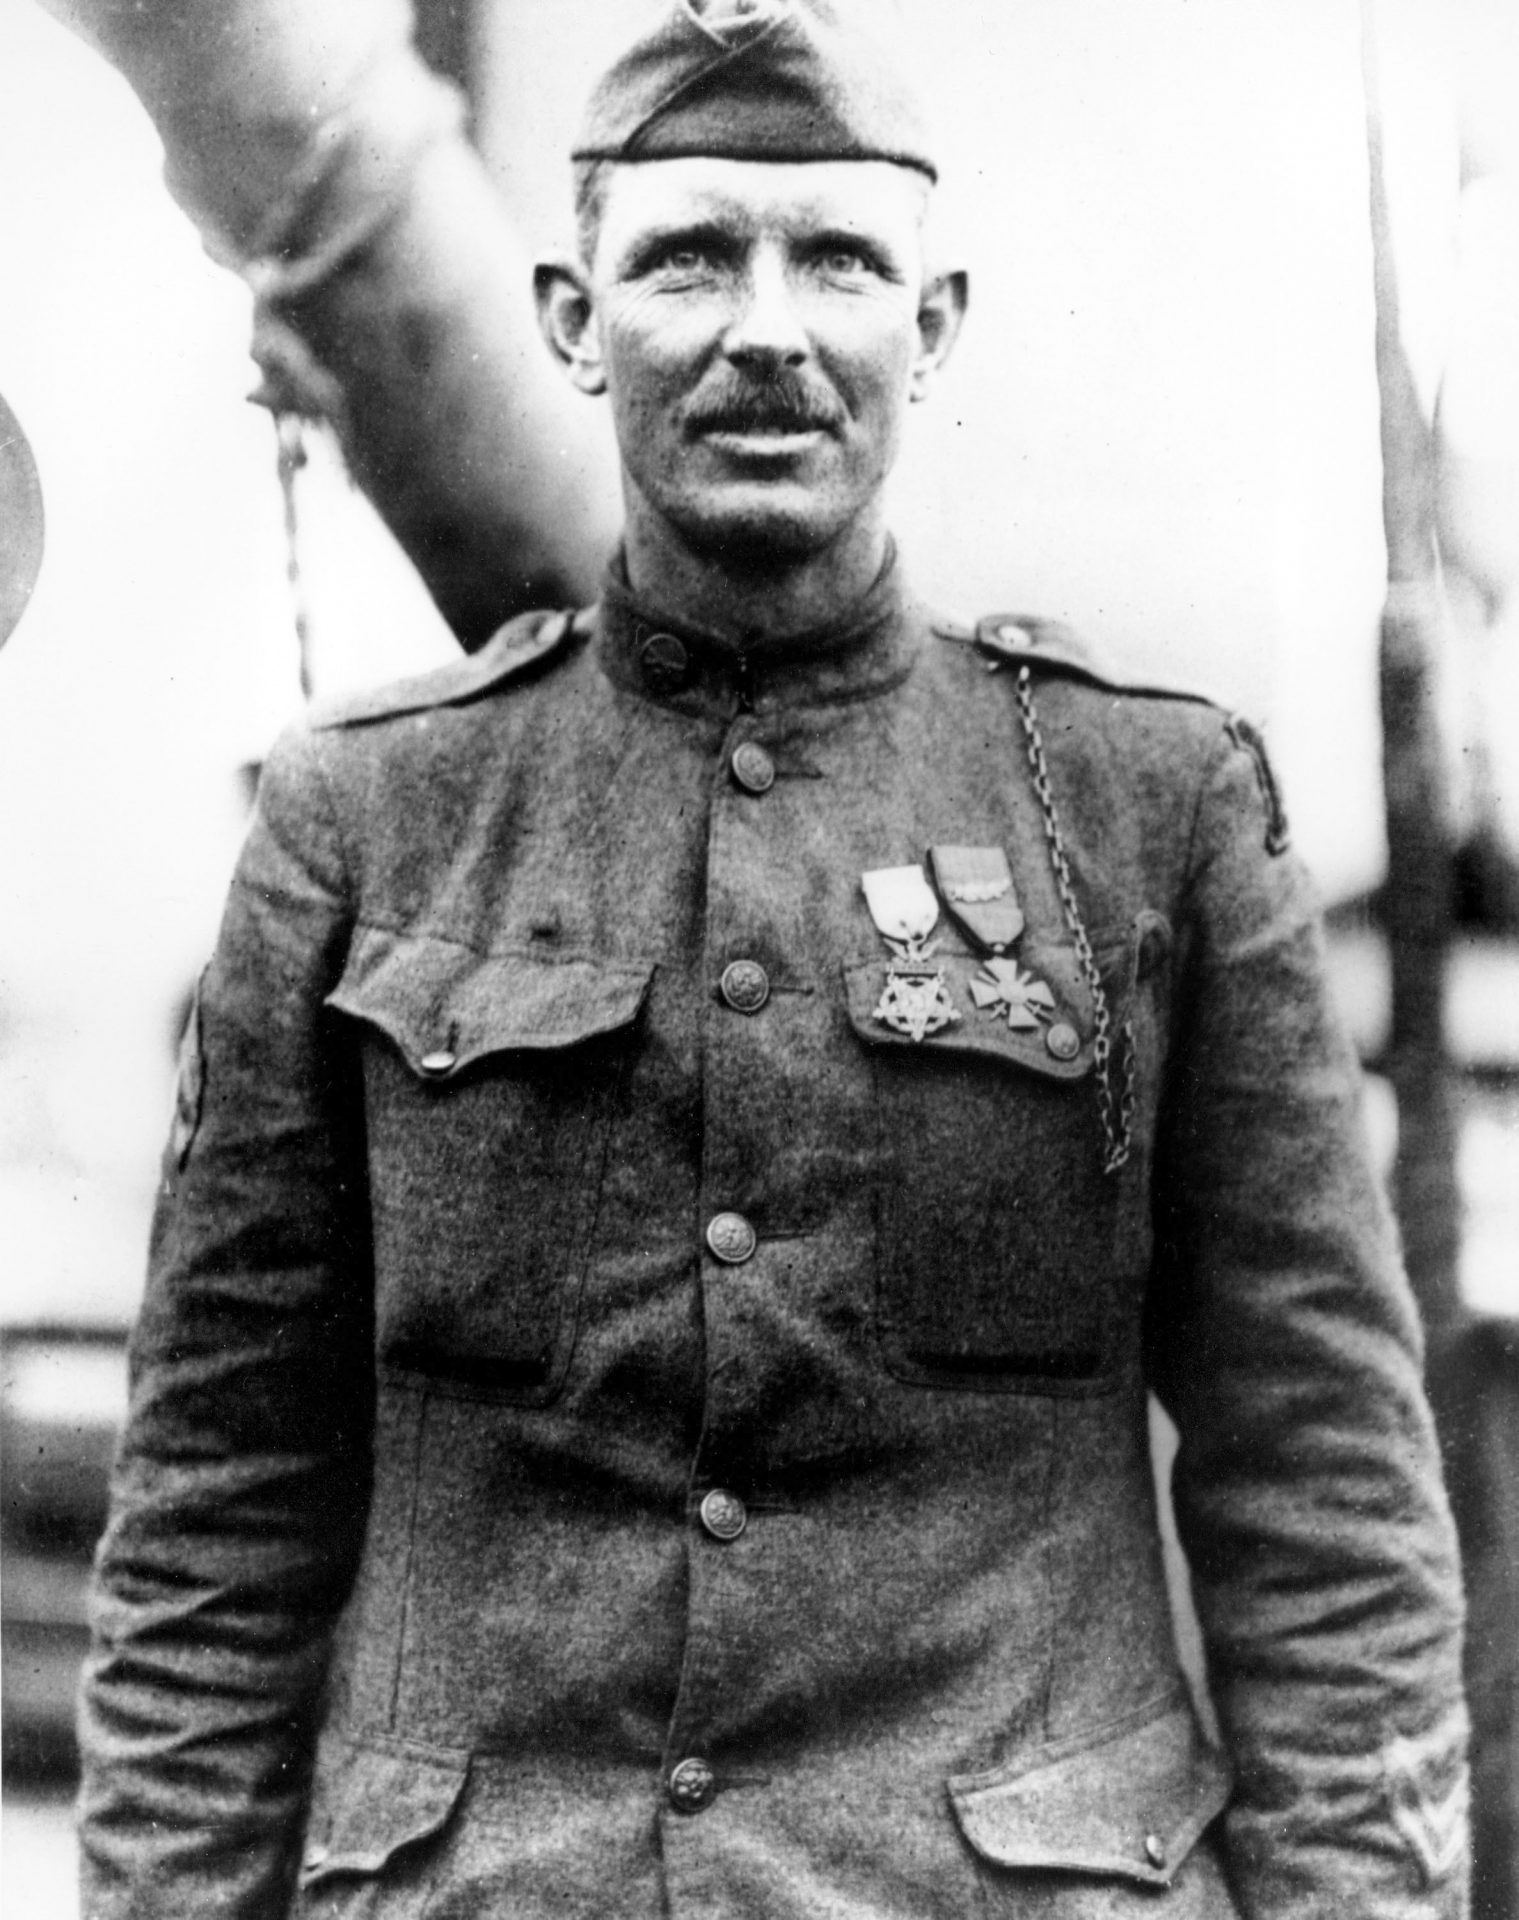 This is a 1919 file photo of Sgt. Alvin York of the U.S. Army in an unknown location.